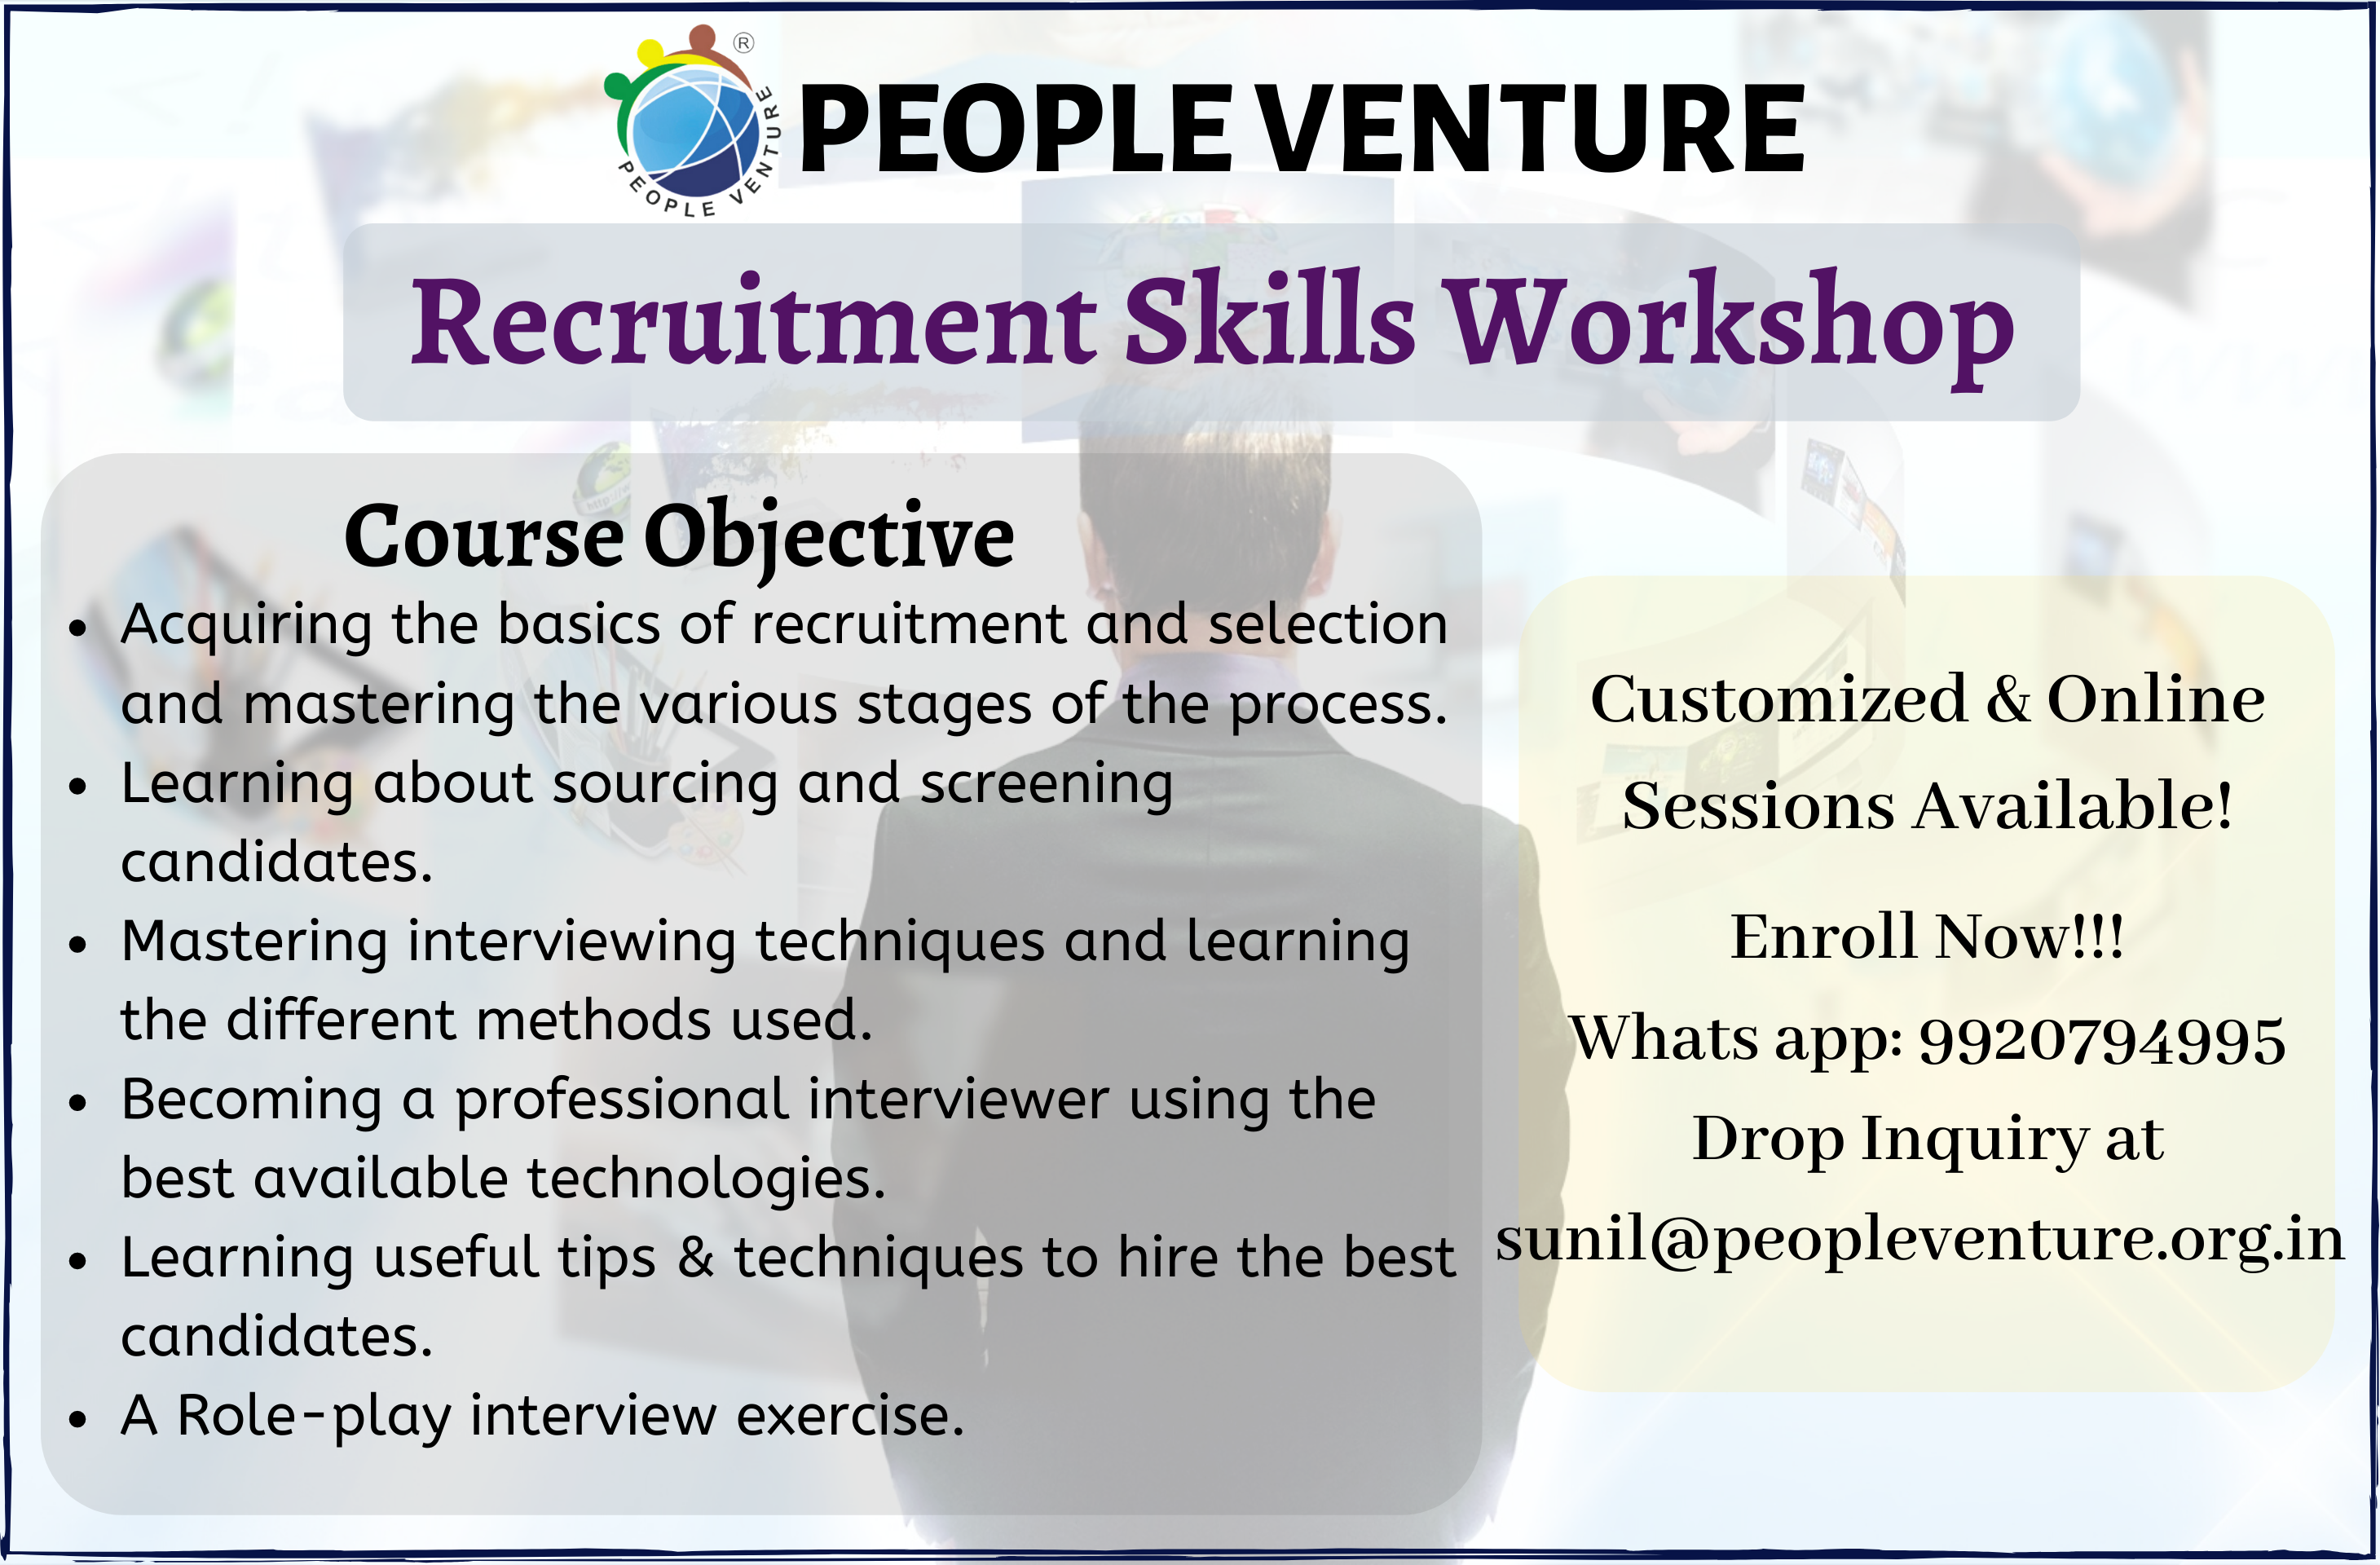 Recruitment skills workshop in thane, mumbai and navi mumbai